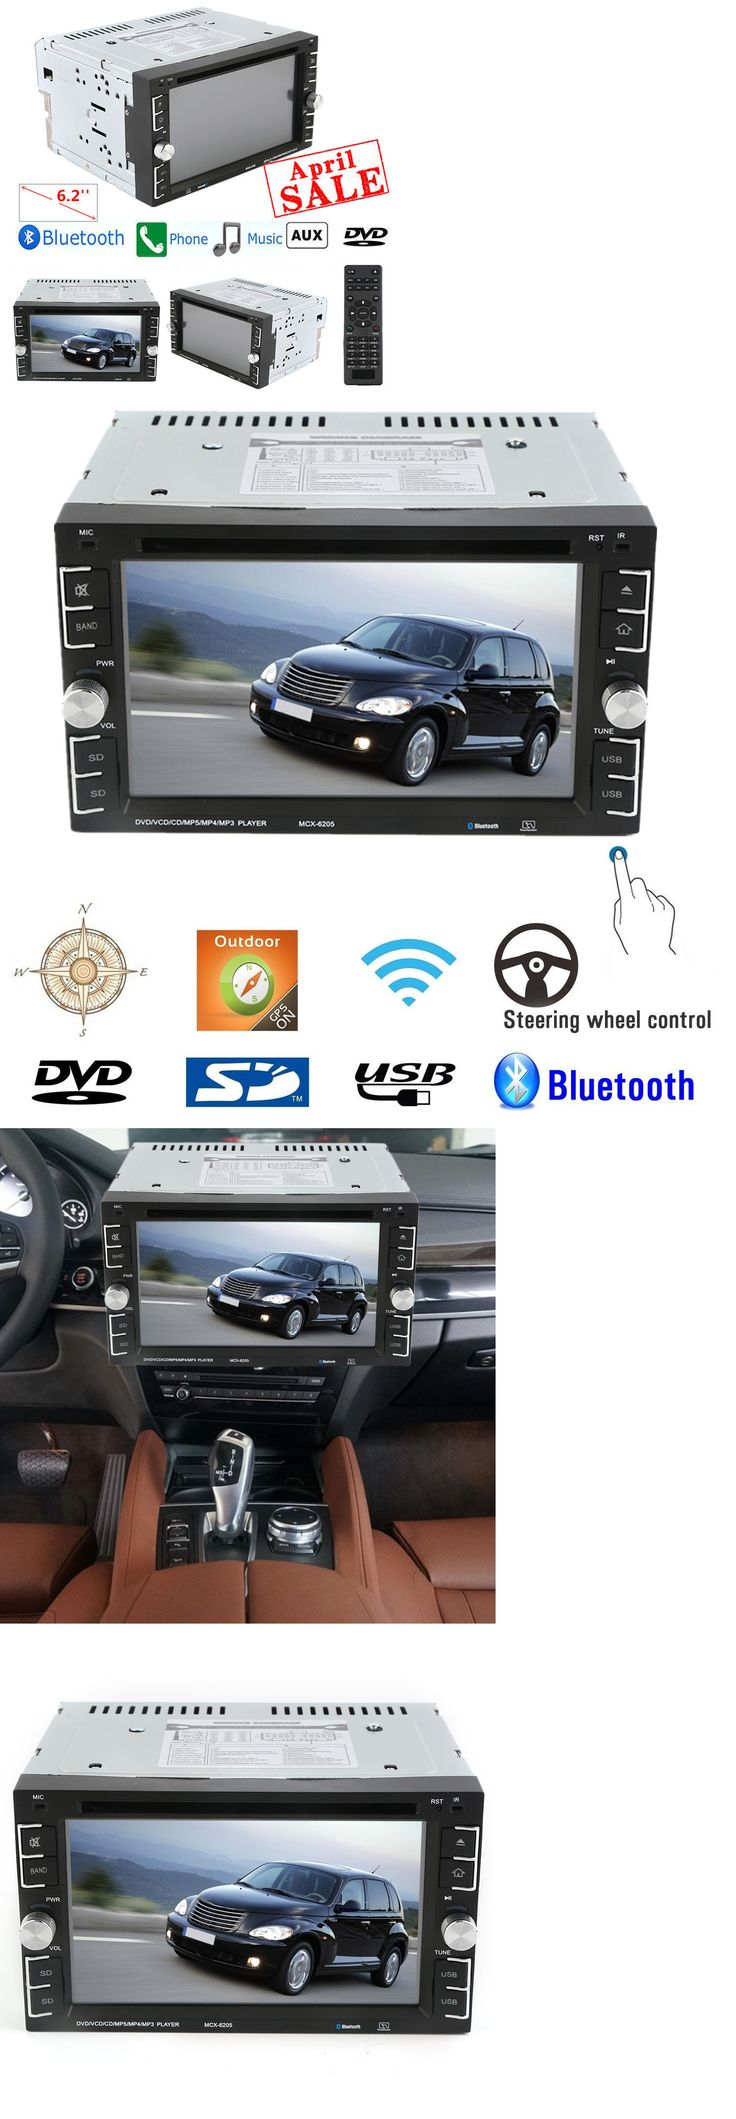 Vehicle Electronics And GPS: Bluetooth Car Stereo Dvd Cd Player 6.2 Double 2Din Radio Ipod Sd/Usb In-Dash Hd -> BUY IT NOW ONLY: $66.77 on eBay!